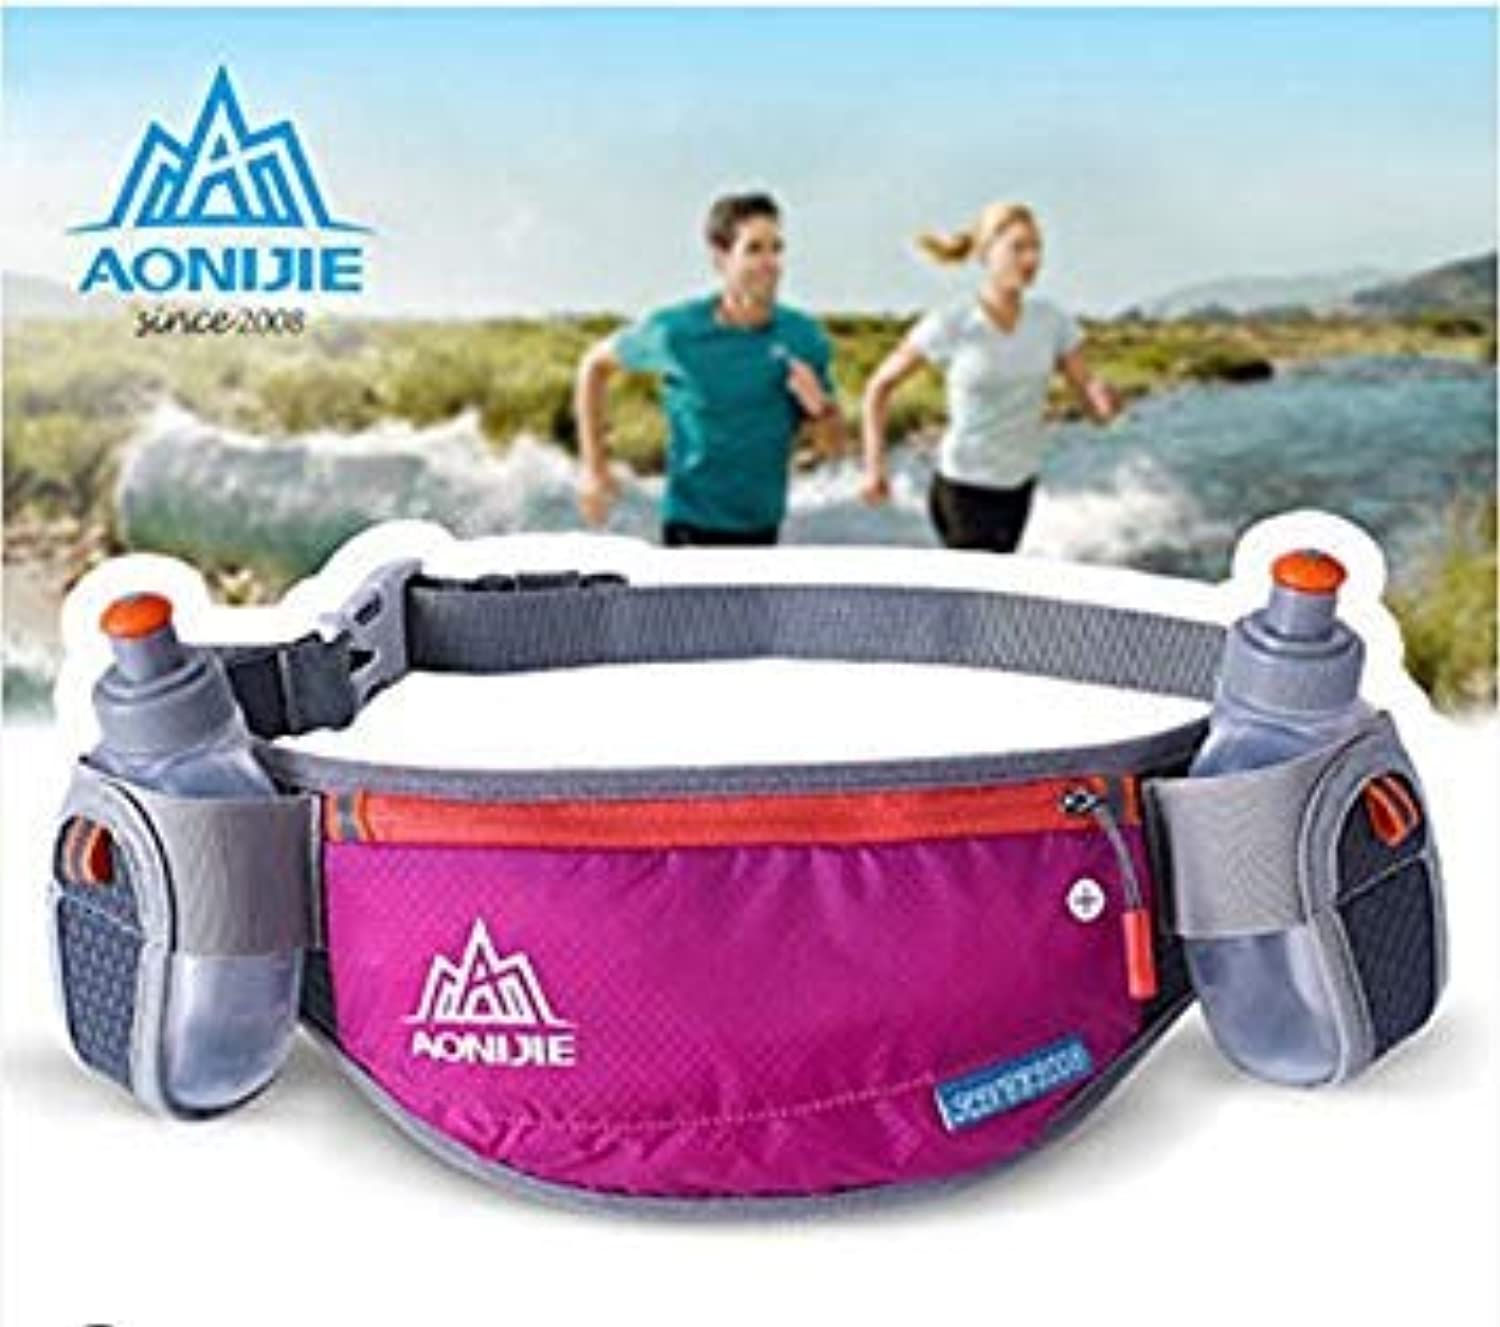 E882 Black   AONIJIE Sports Bag Men Women Running Purse Outdoor Close-Fitting Pocket Wallet Package Travel Free Delivery